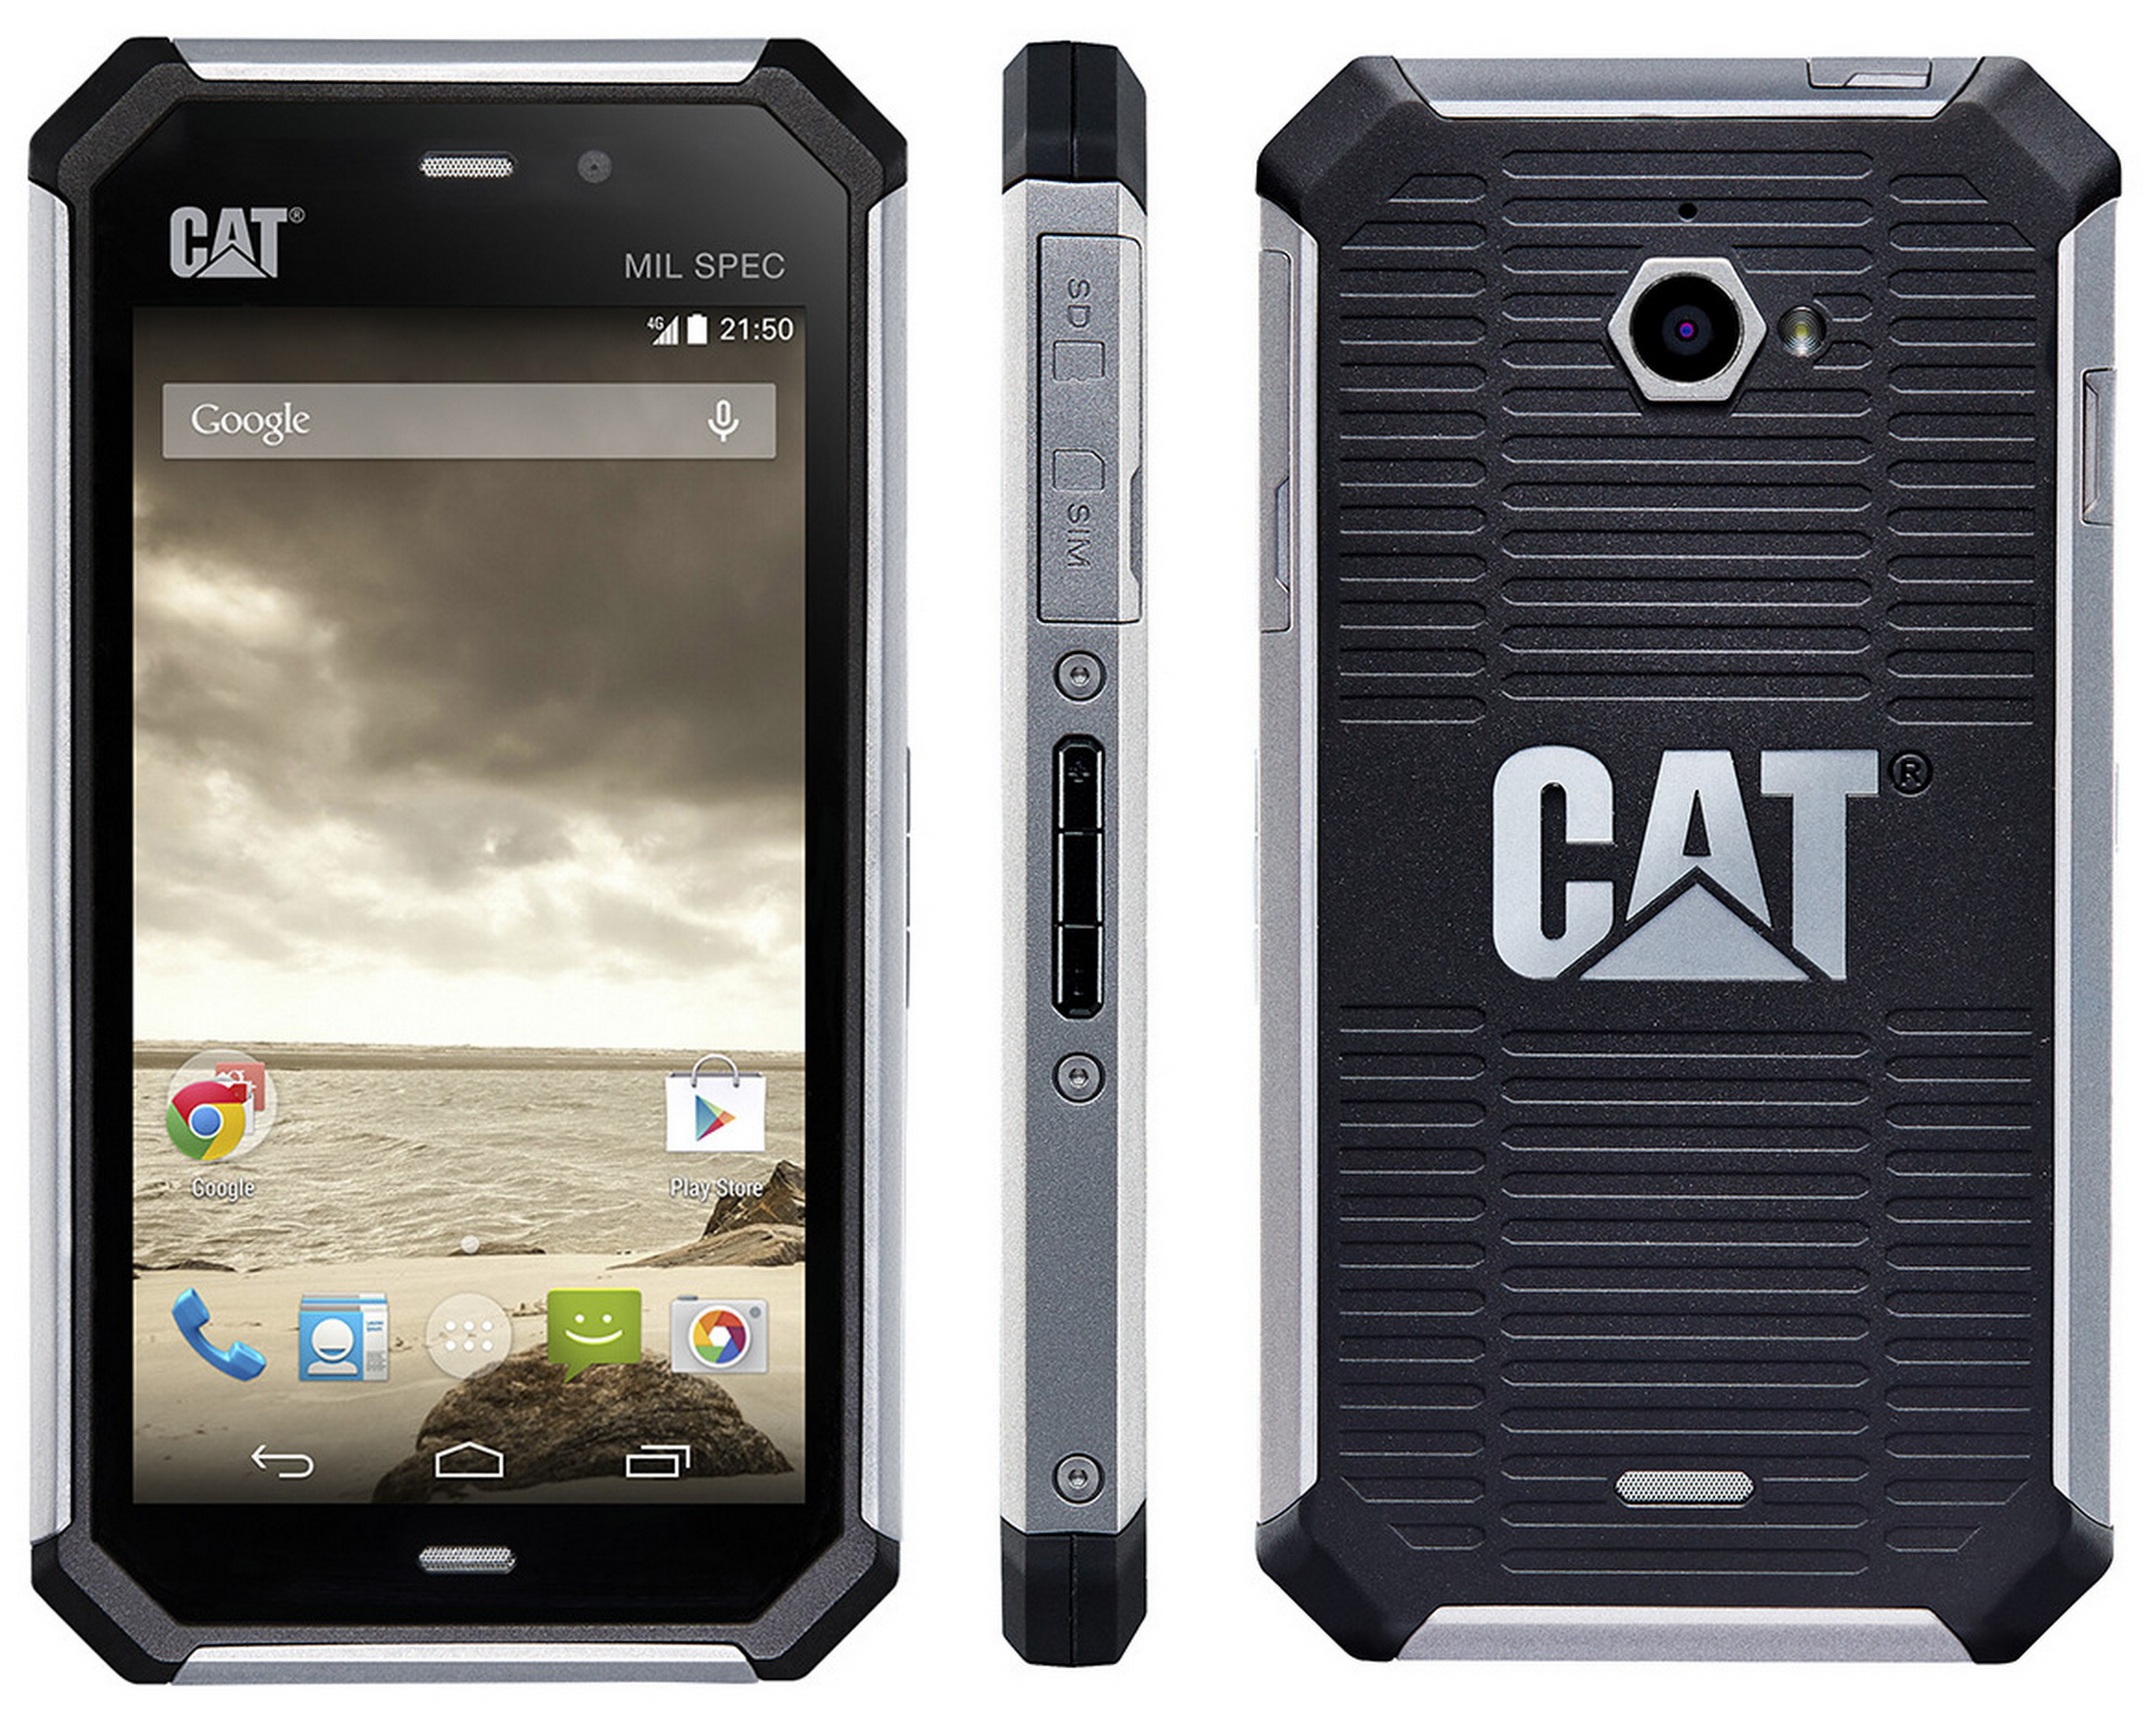 Cat S50 smartphone review